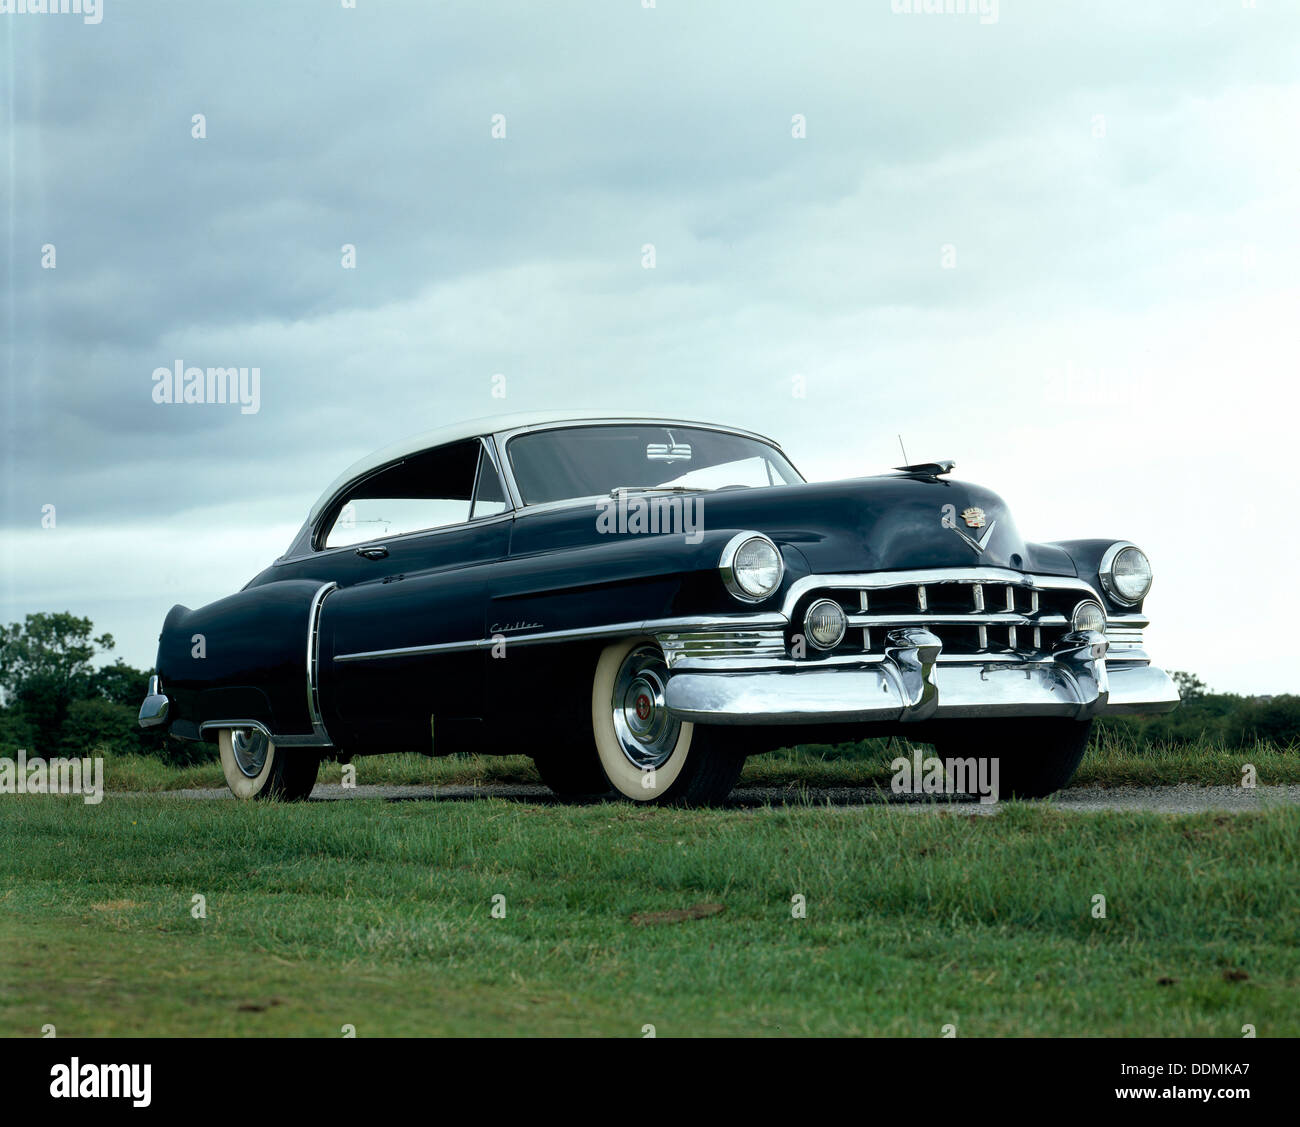 A 1950 Cadillac 60S 2 Door Coupe. - Stock Image